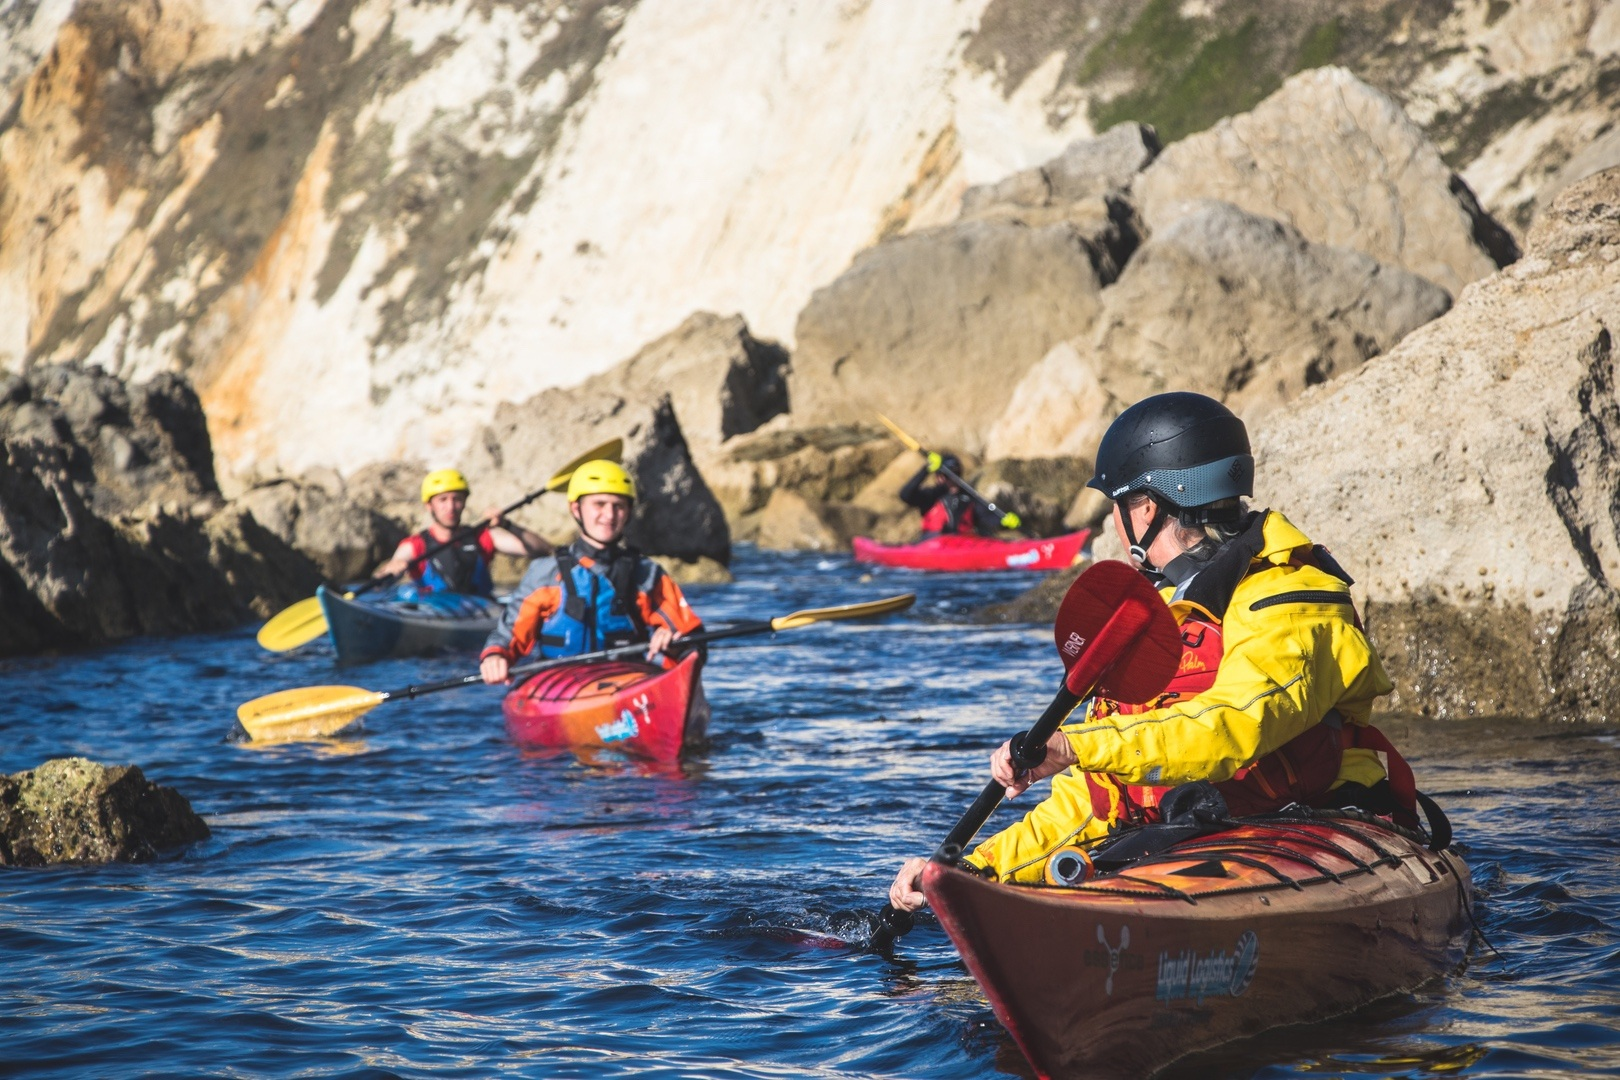 Private coaching offers you a one-to-one social distancing paddling experience